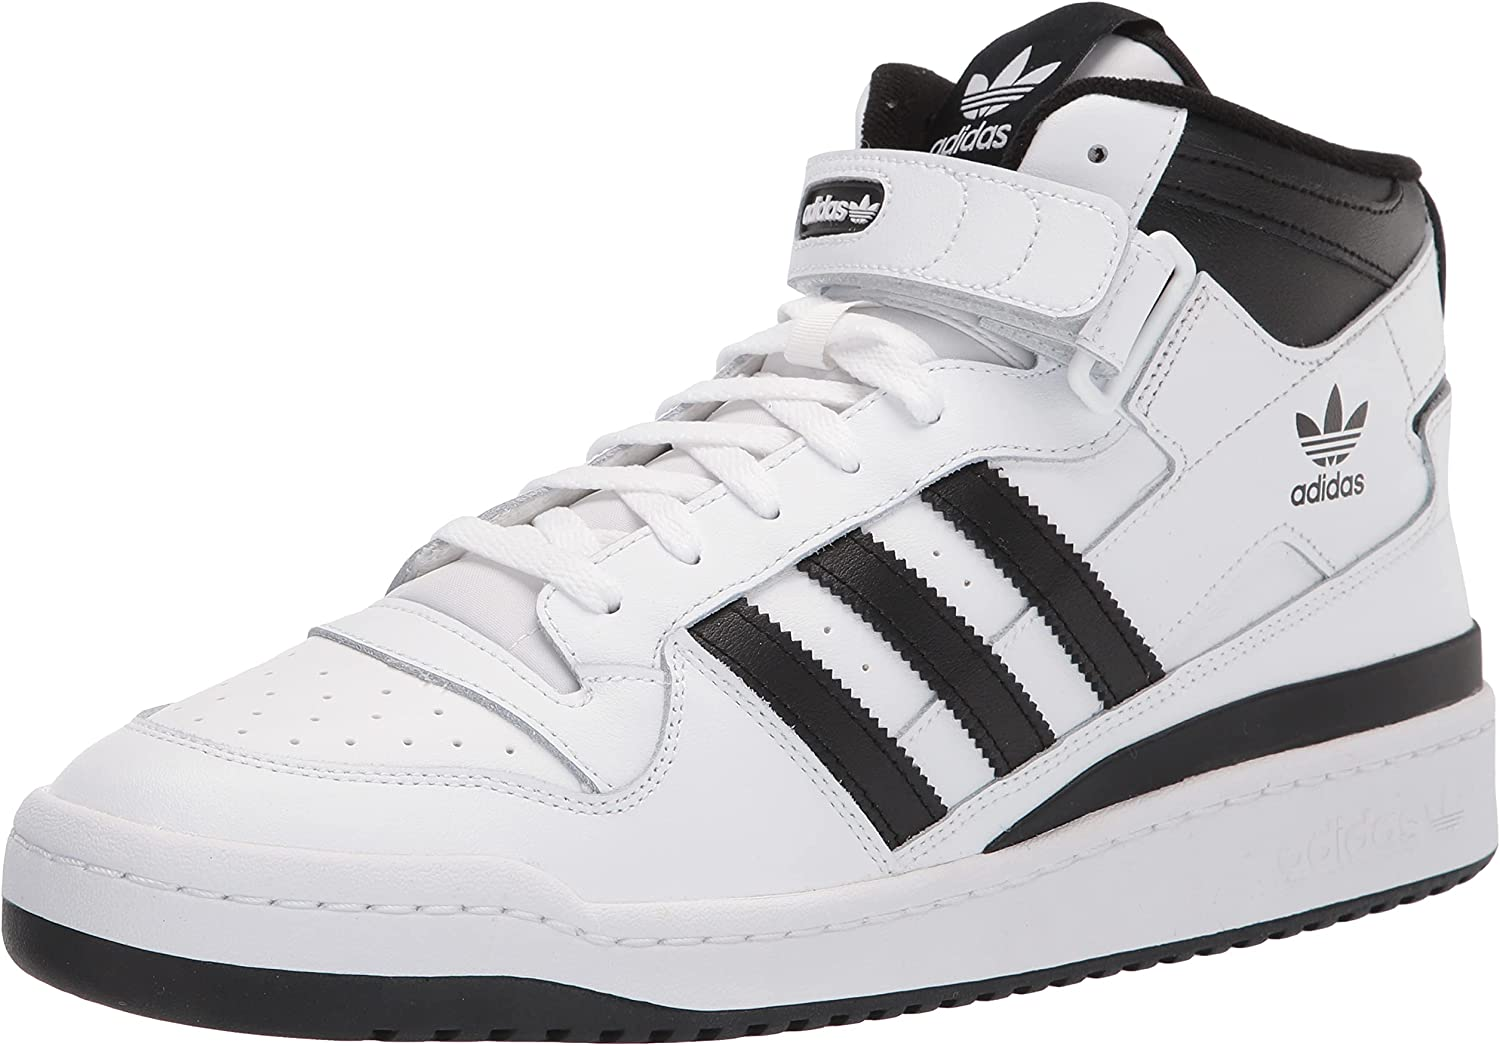 adidas New Free Shipping Originals Unisex-Adult Super beauty product restock quality top Forum Sneaker MID